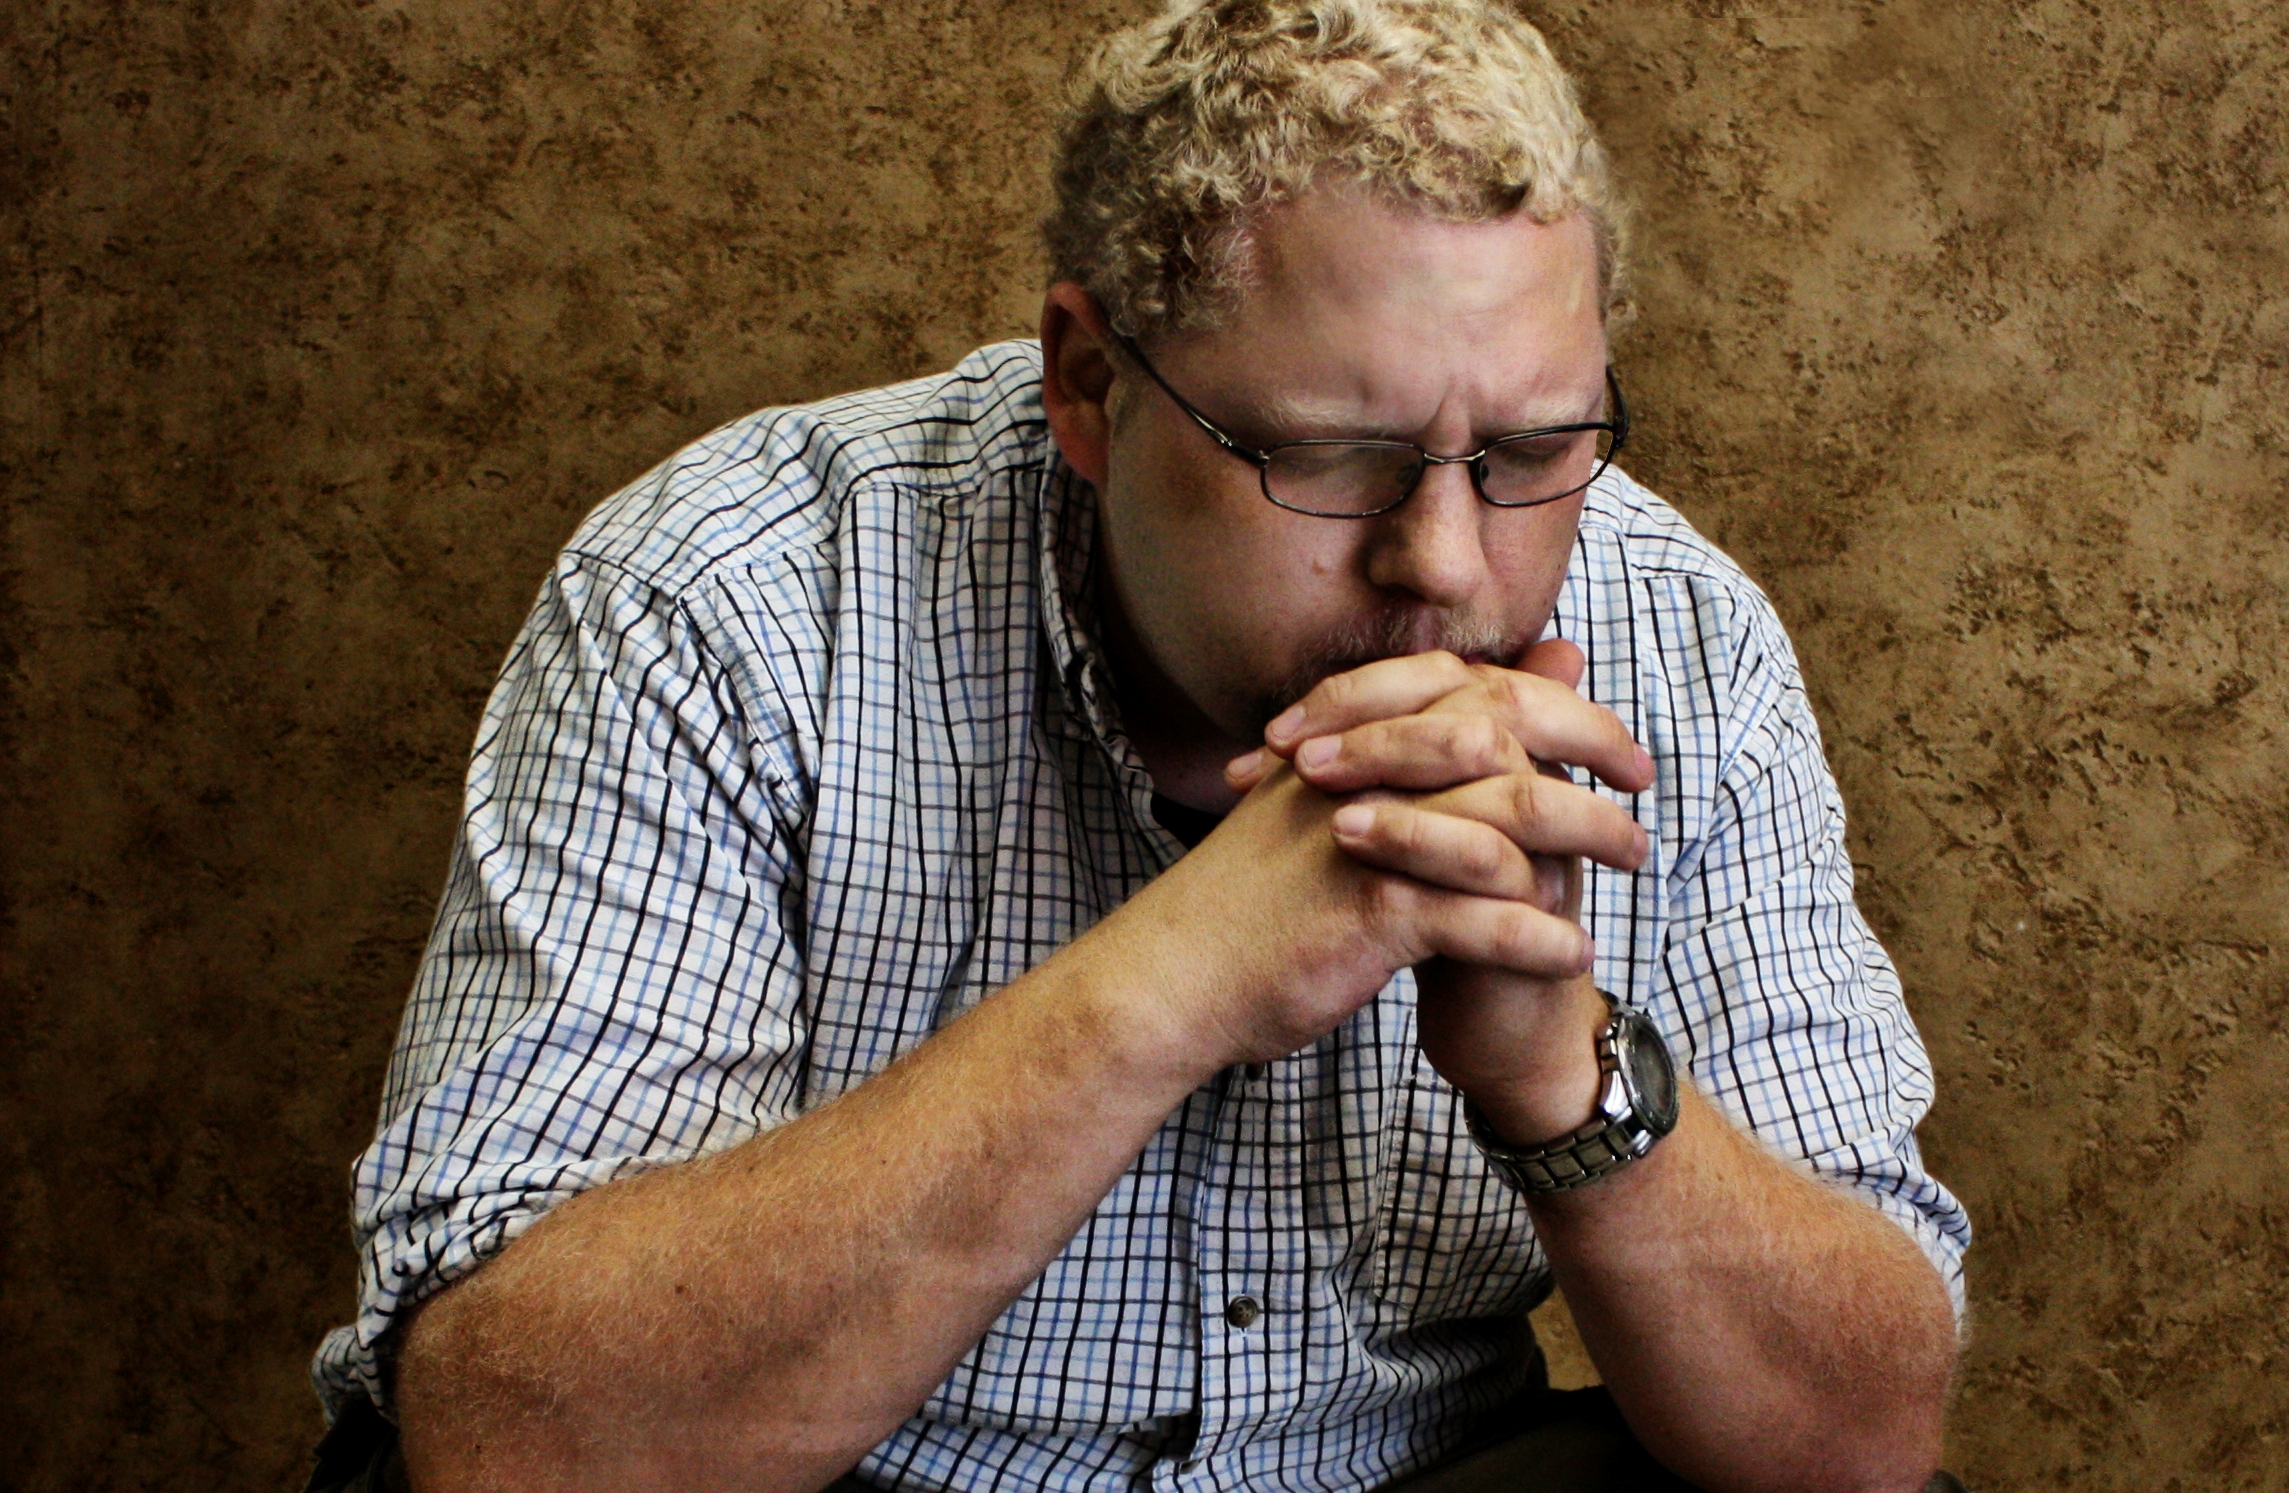 Issues Men Have in Ministry